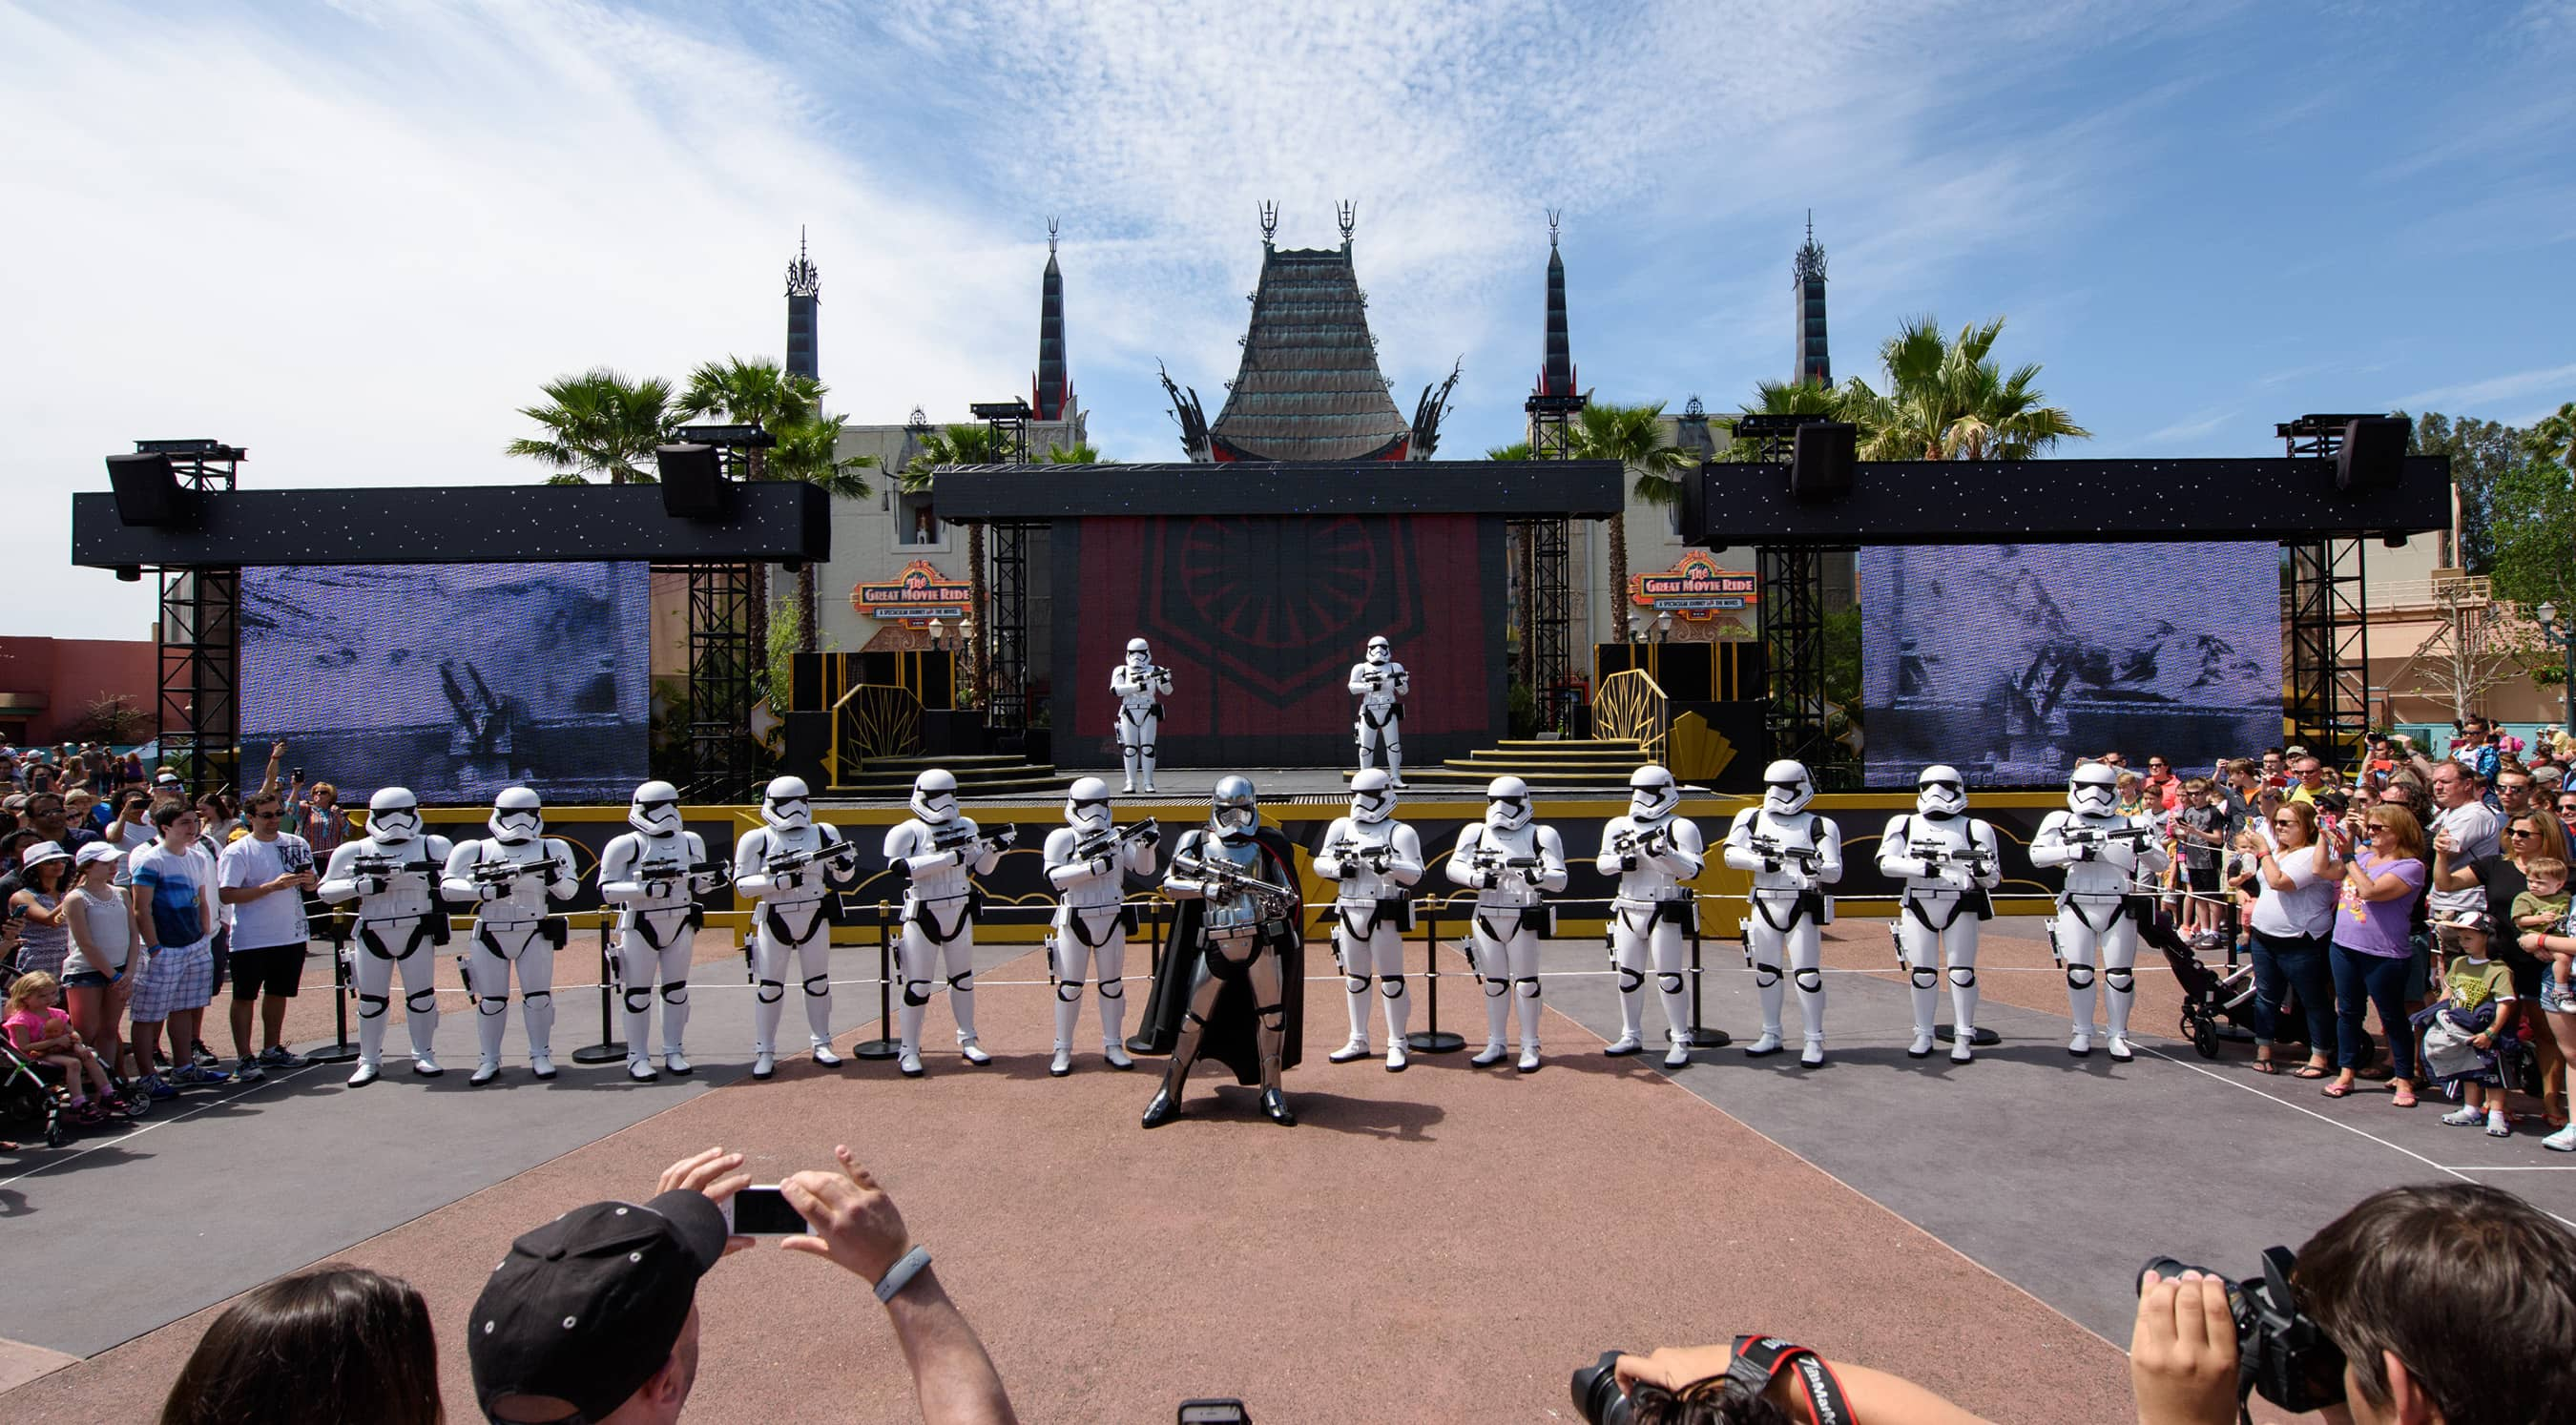 8 ways to enjoy Star Wars at Disney's Hollywood Studios